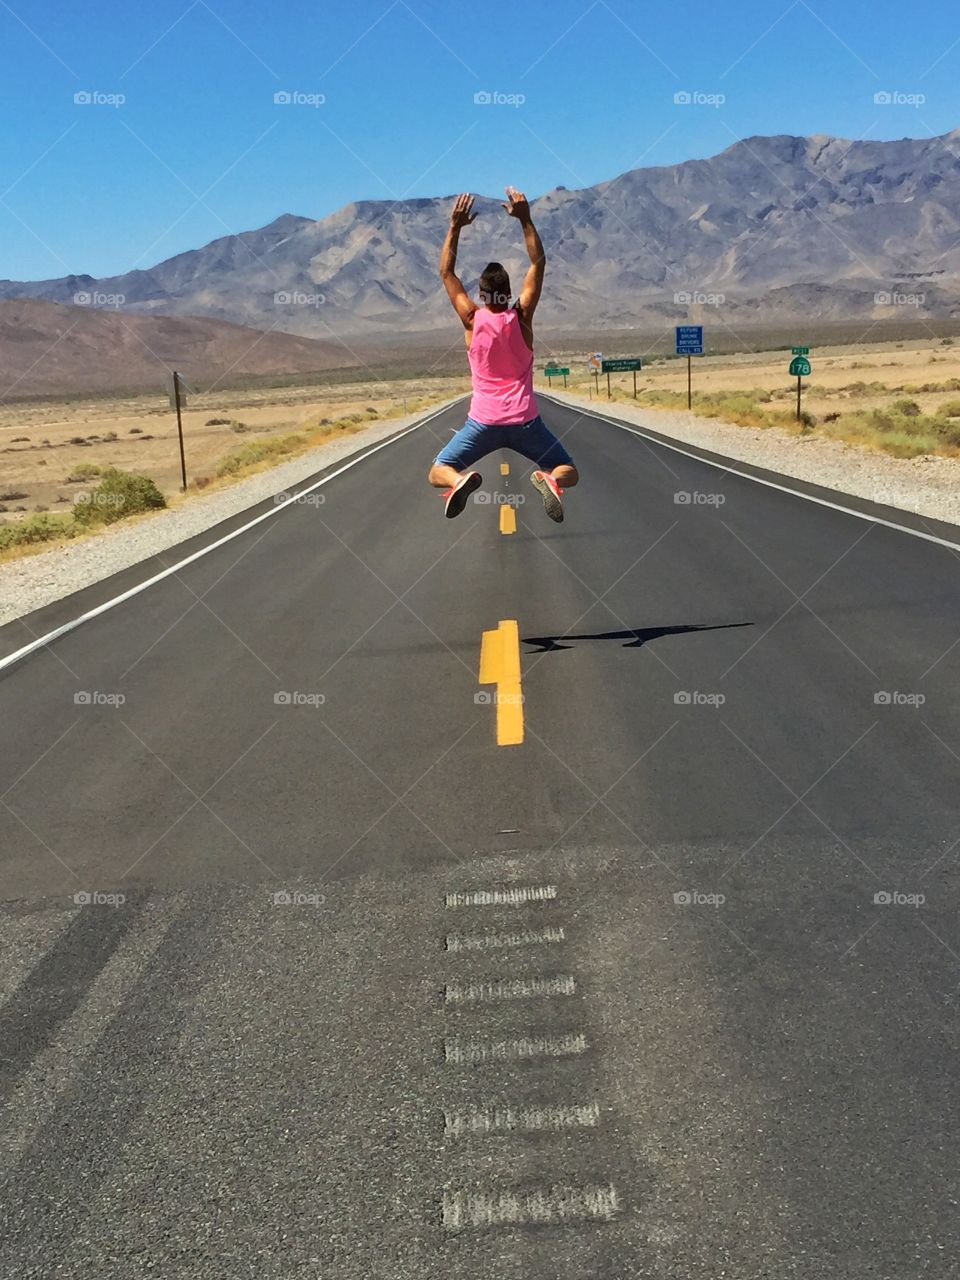 Big jump in the road